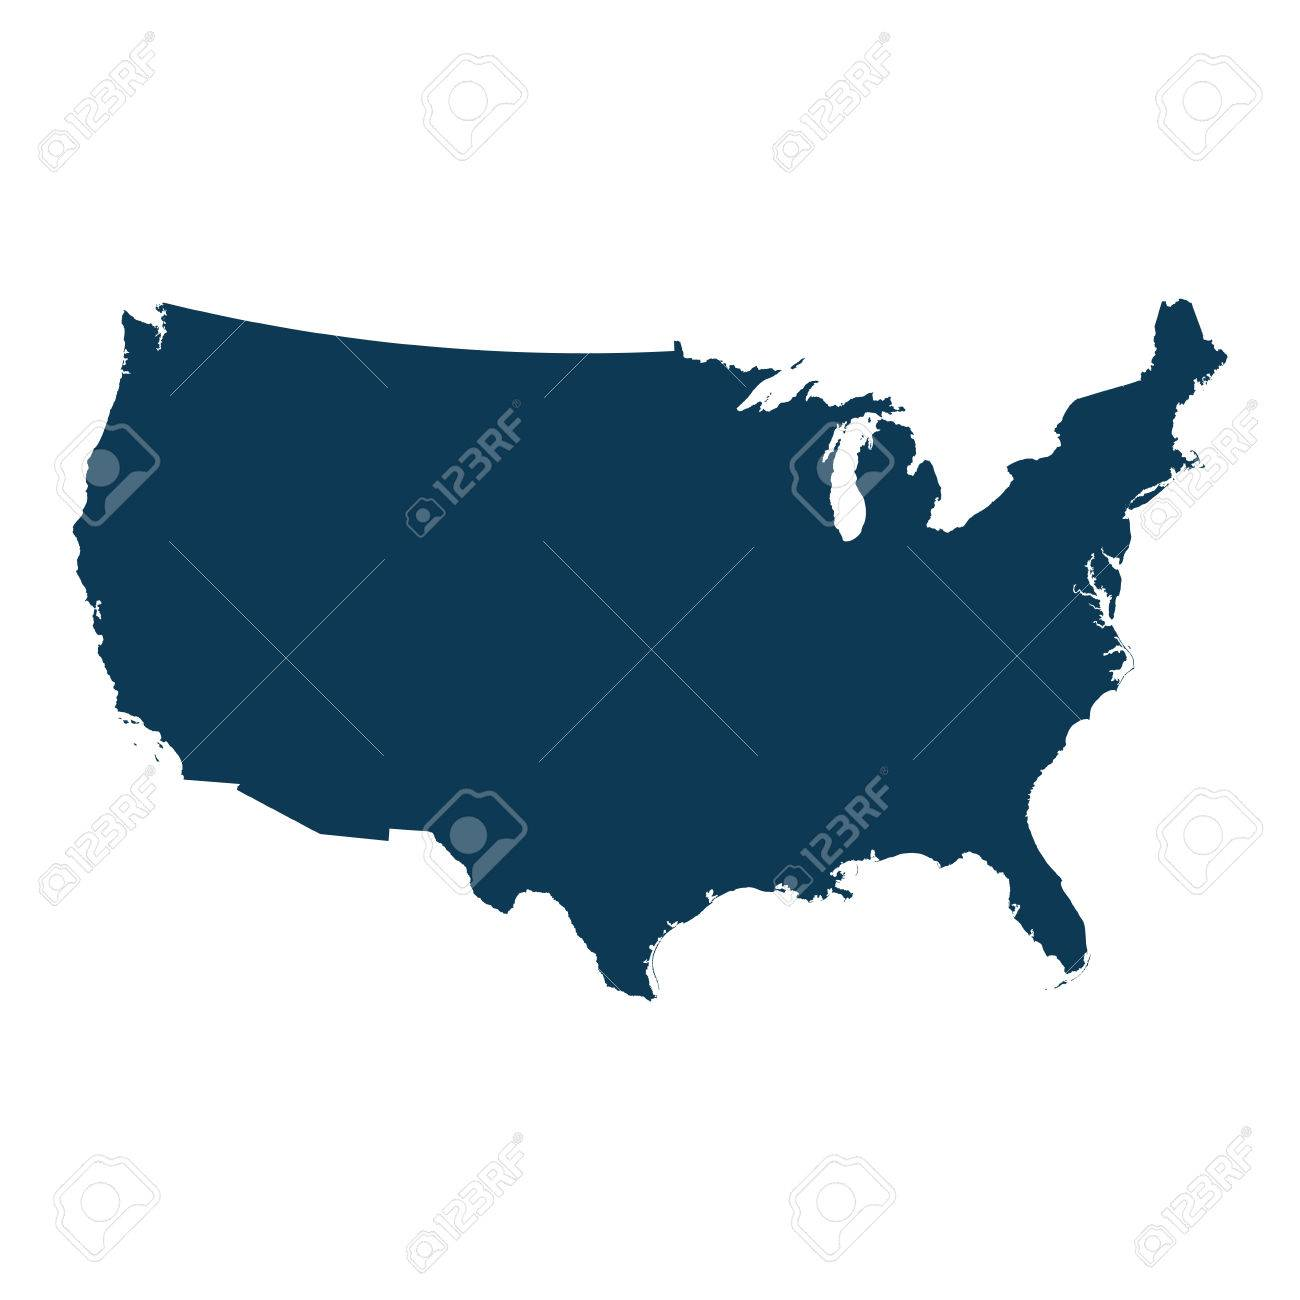 united states of america country map usa territory vector illustration stock vector 62576241